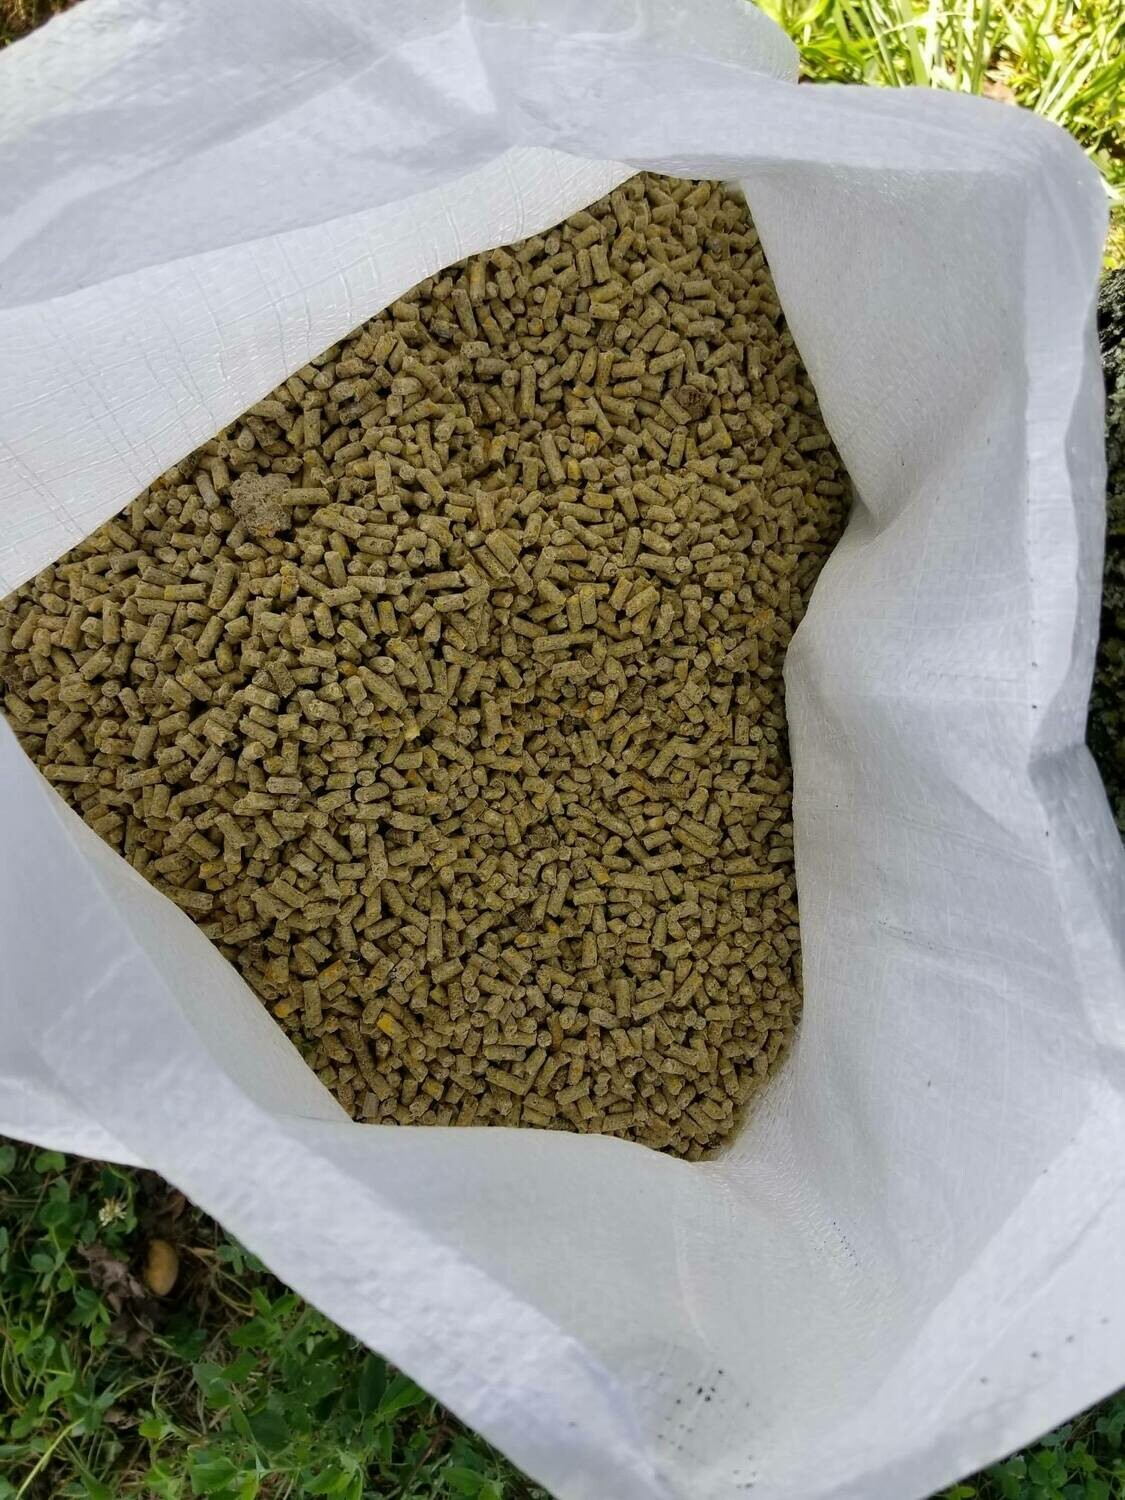 Flowering Pear Poultry Layer Feed 19% protein. Pellets